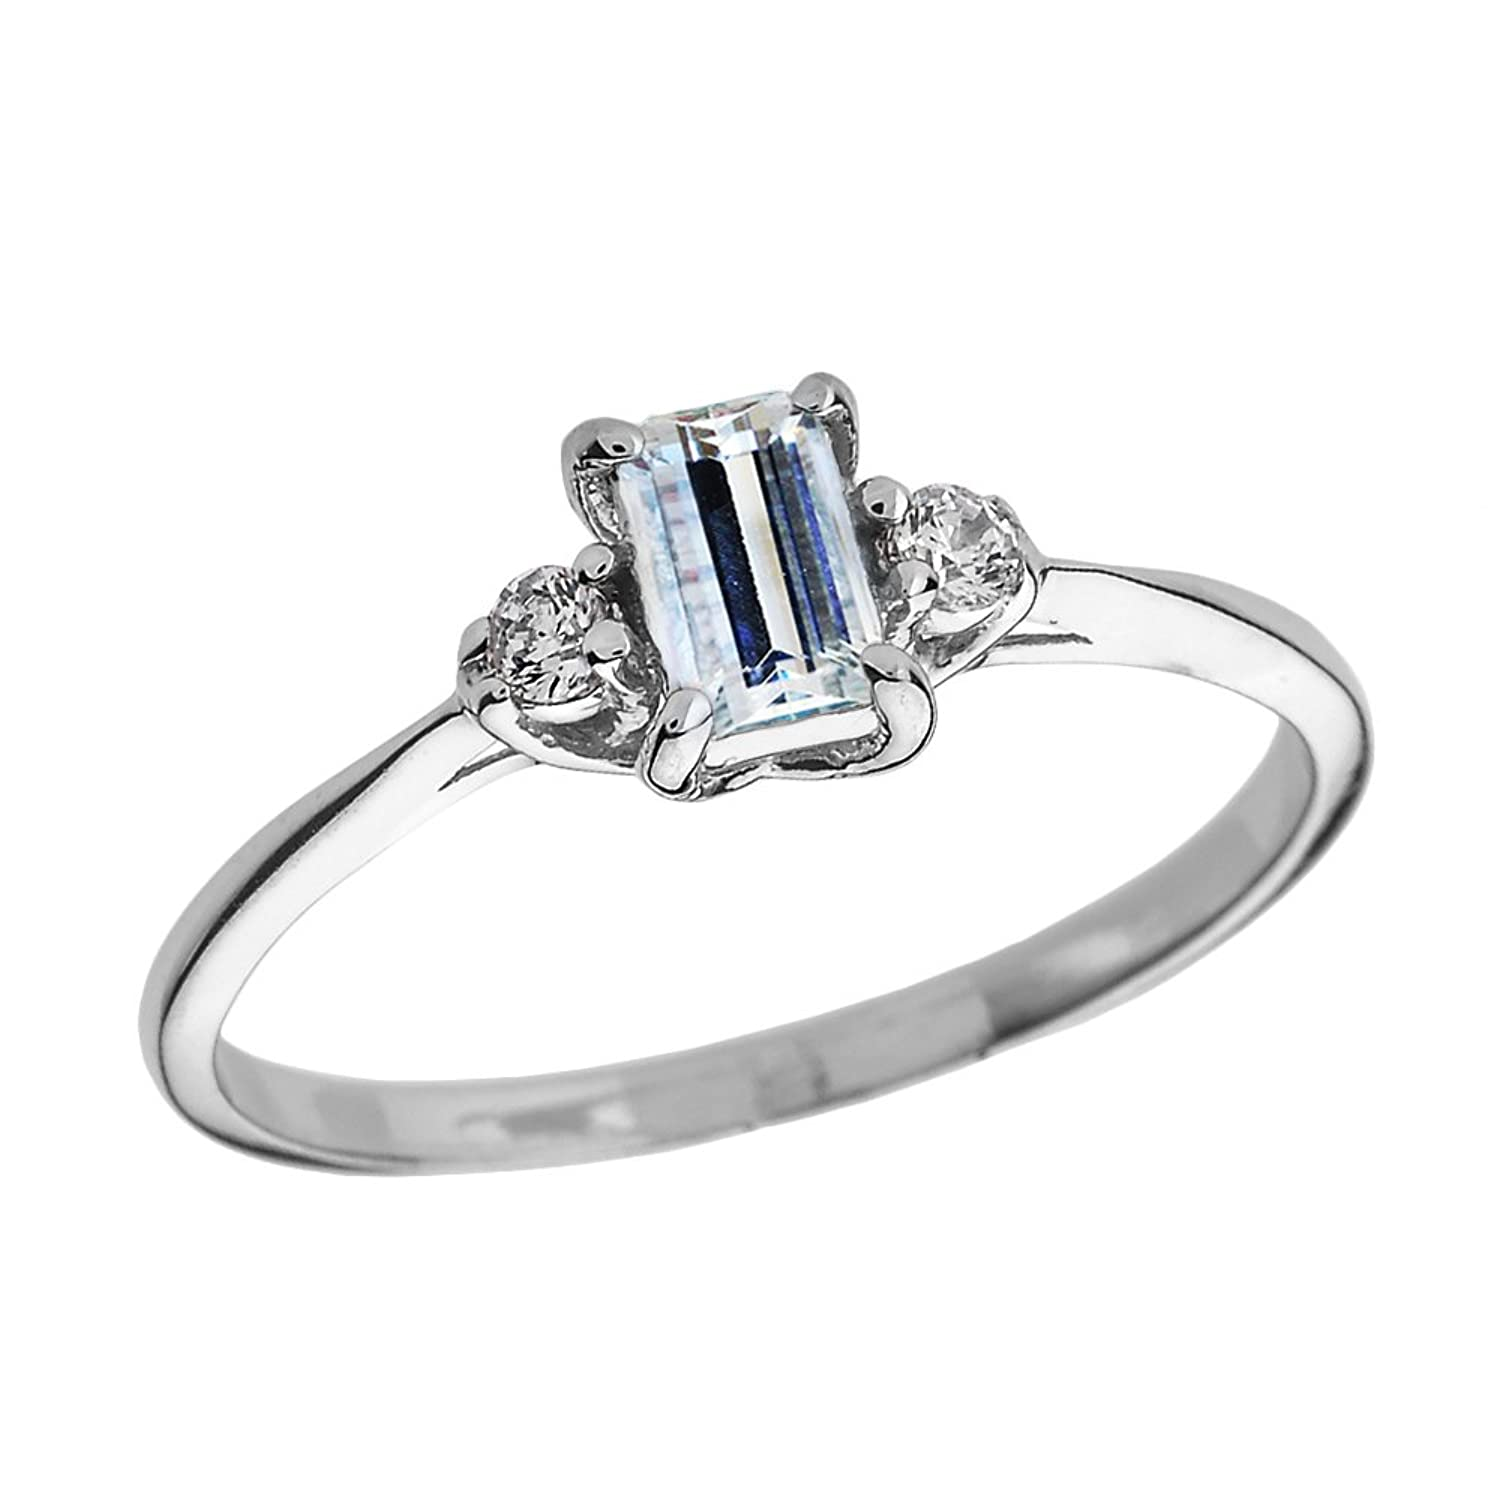 Solid 10k White Gold Diamond and Aquamarine Proposal and Birthstone Ring